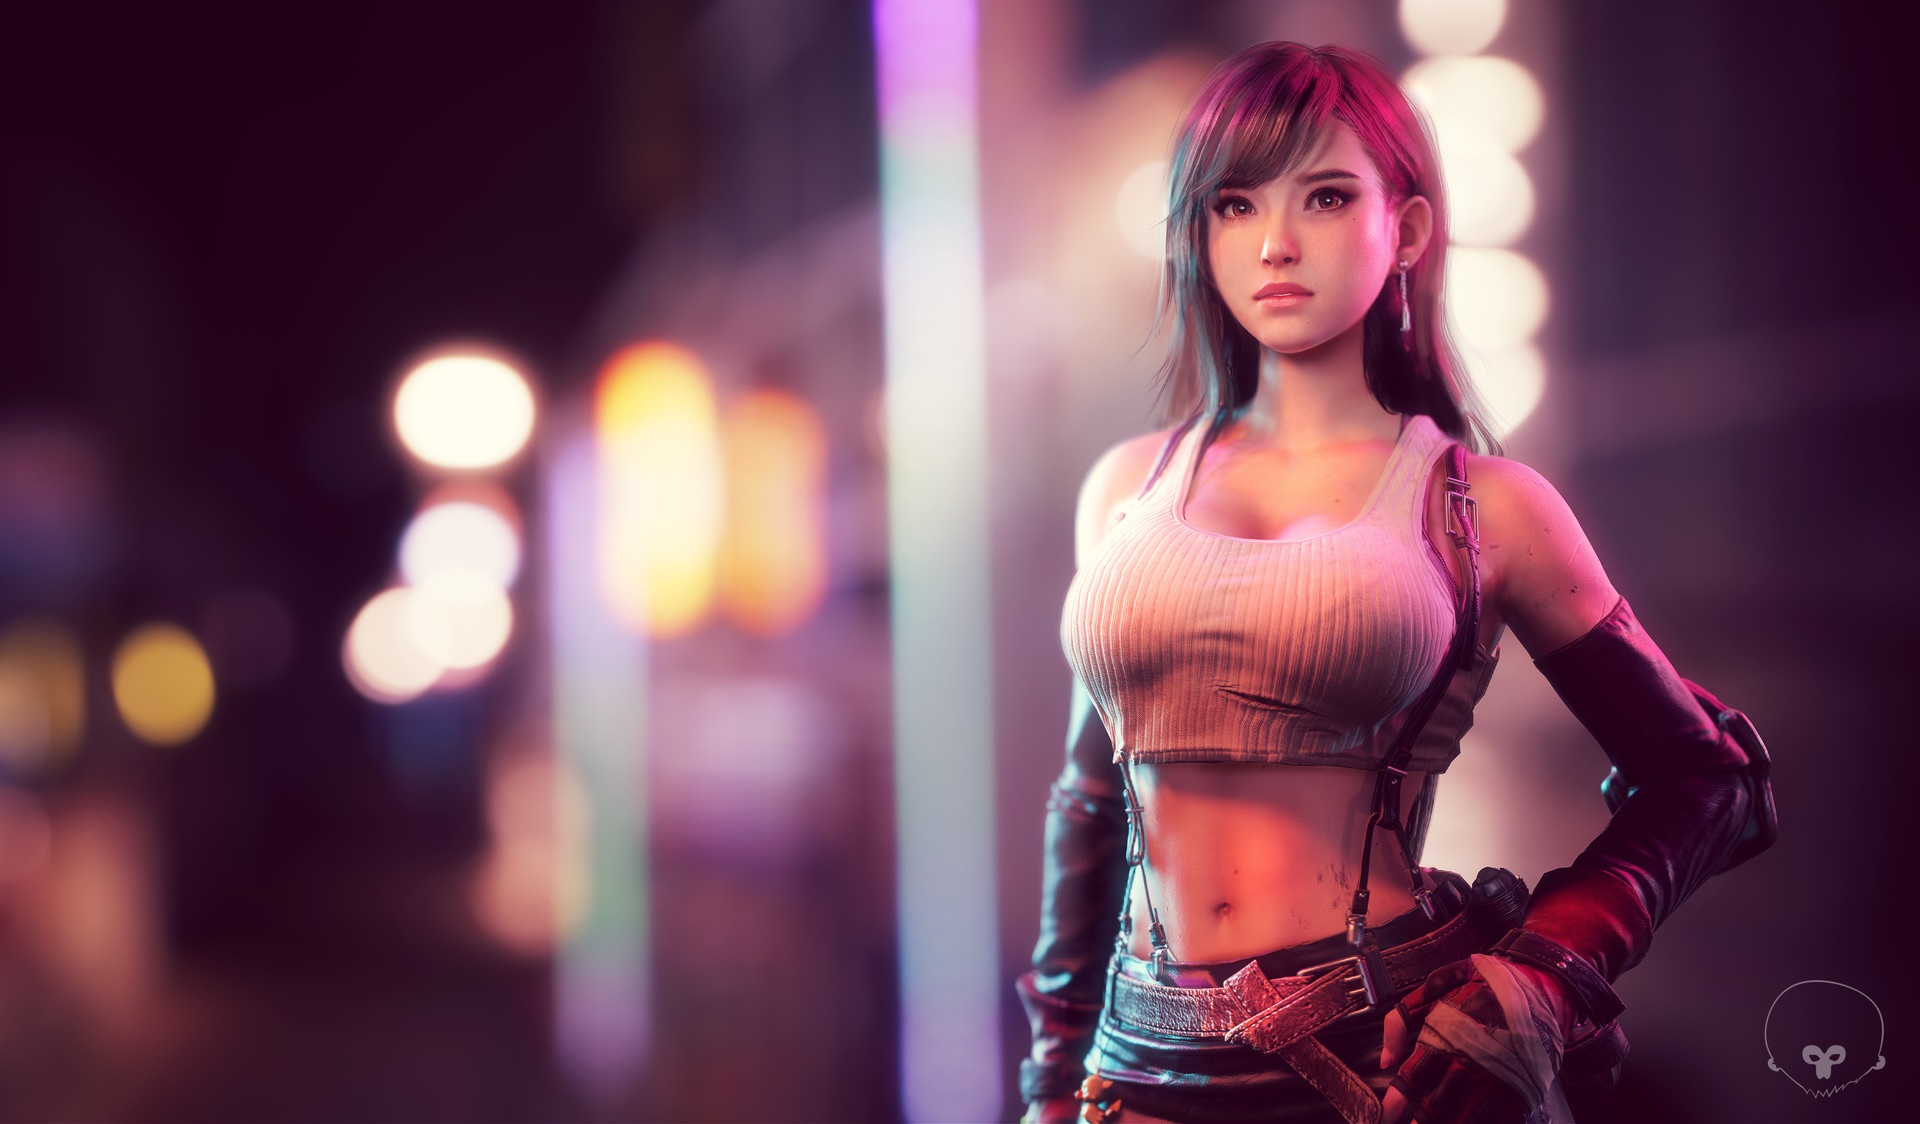 Badass Wallpapers Hd Tifa Lockhart In Final Fantasy Vii Hd Games 4k